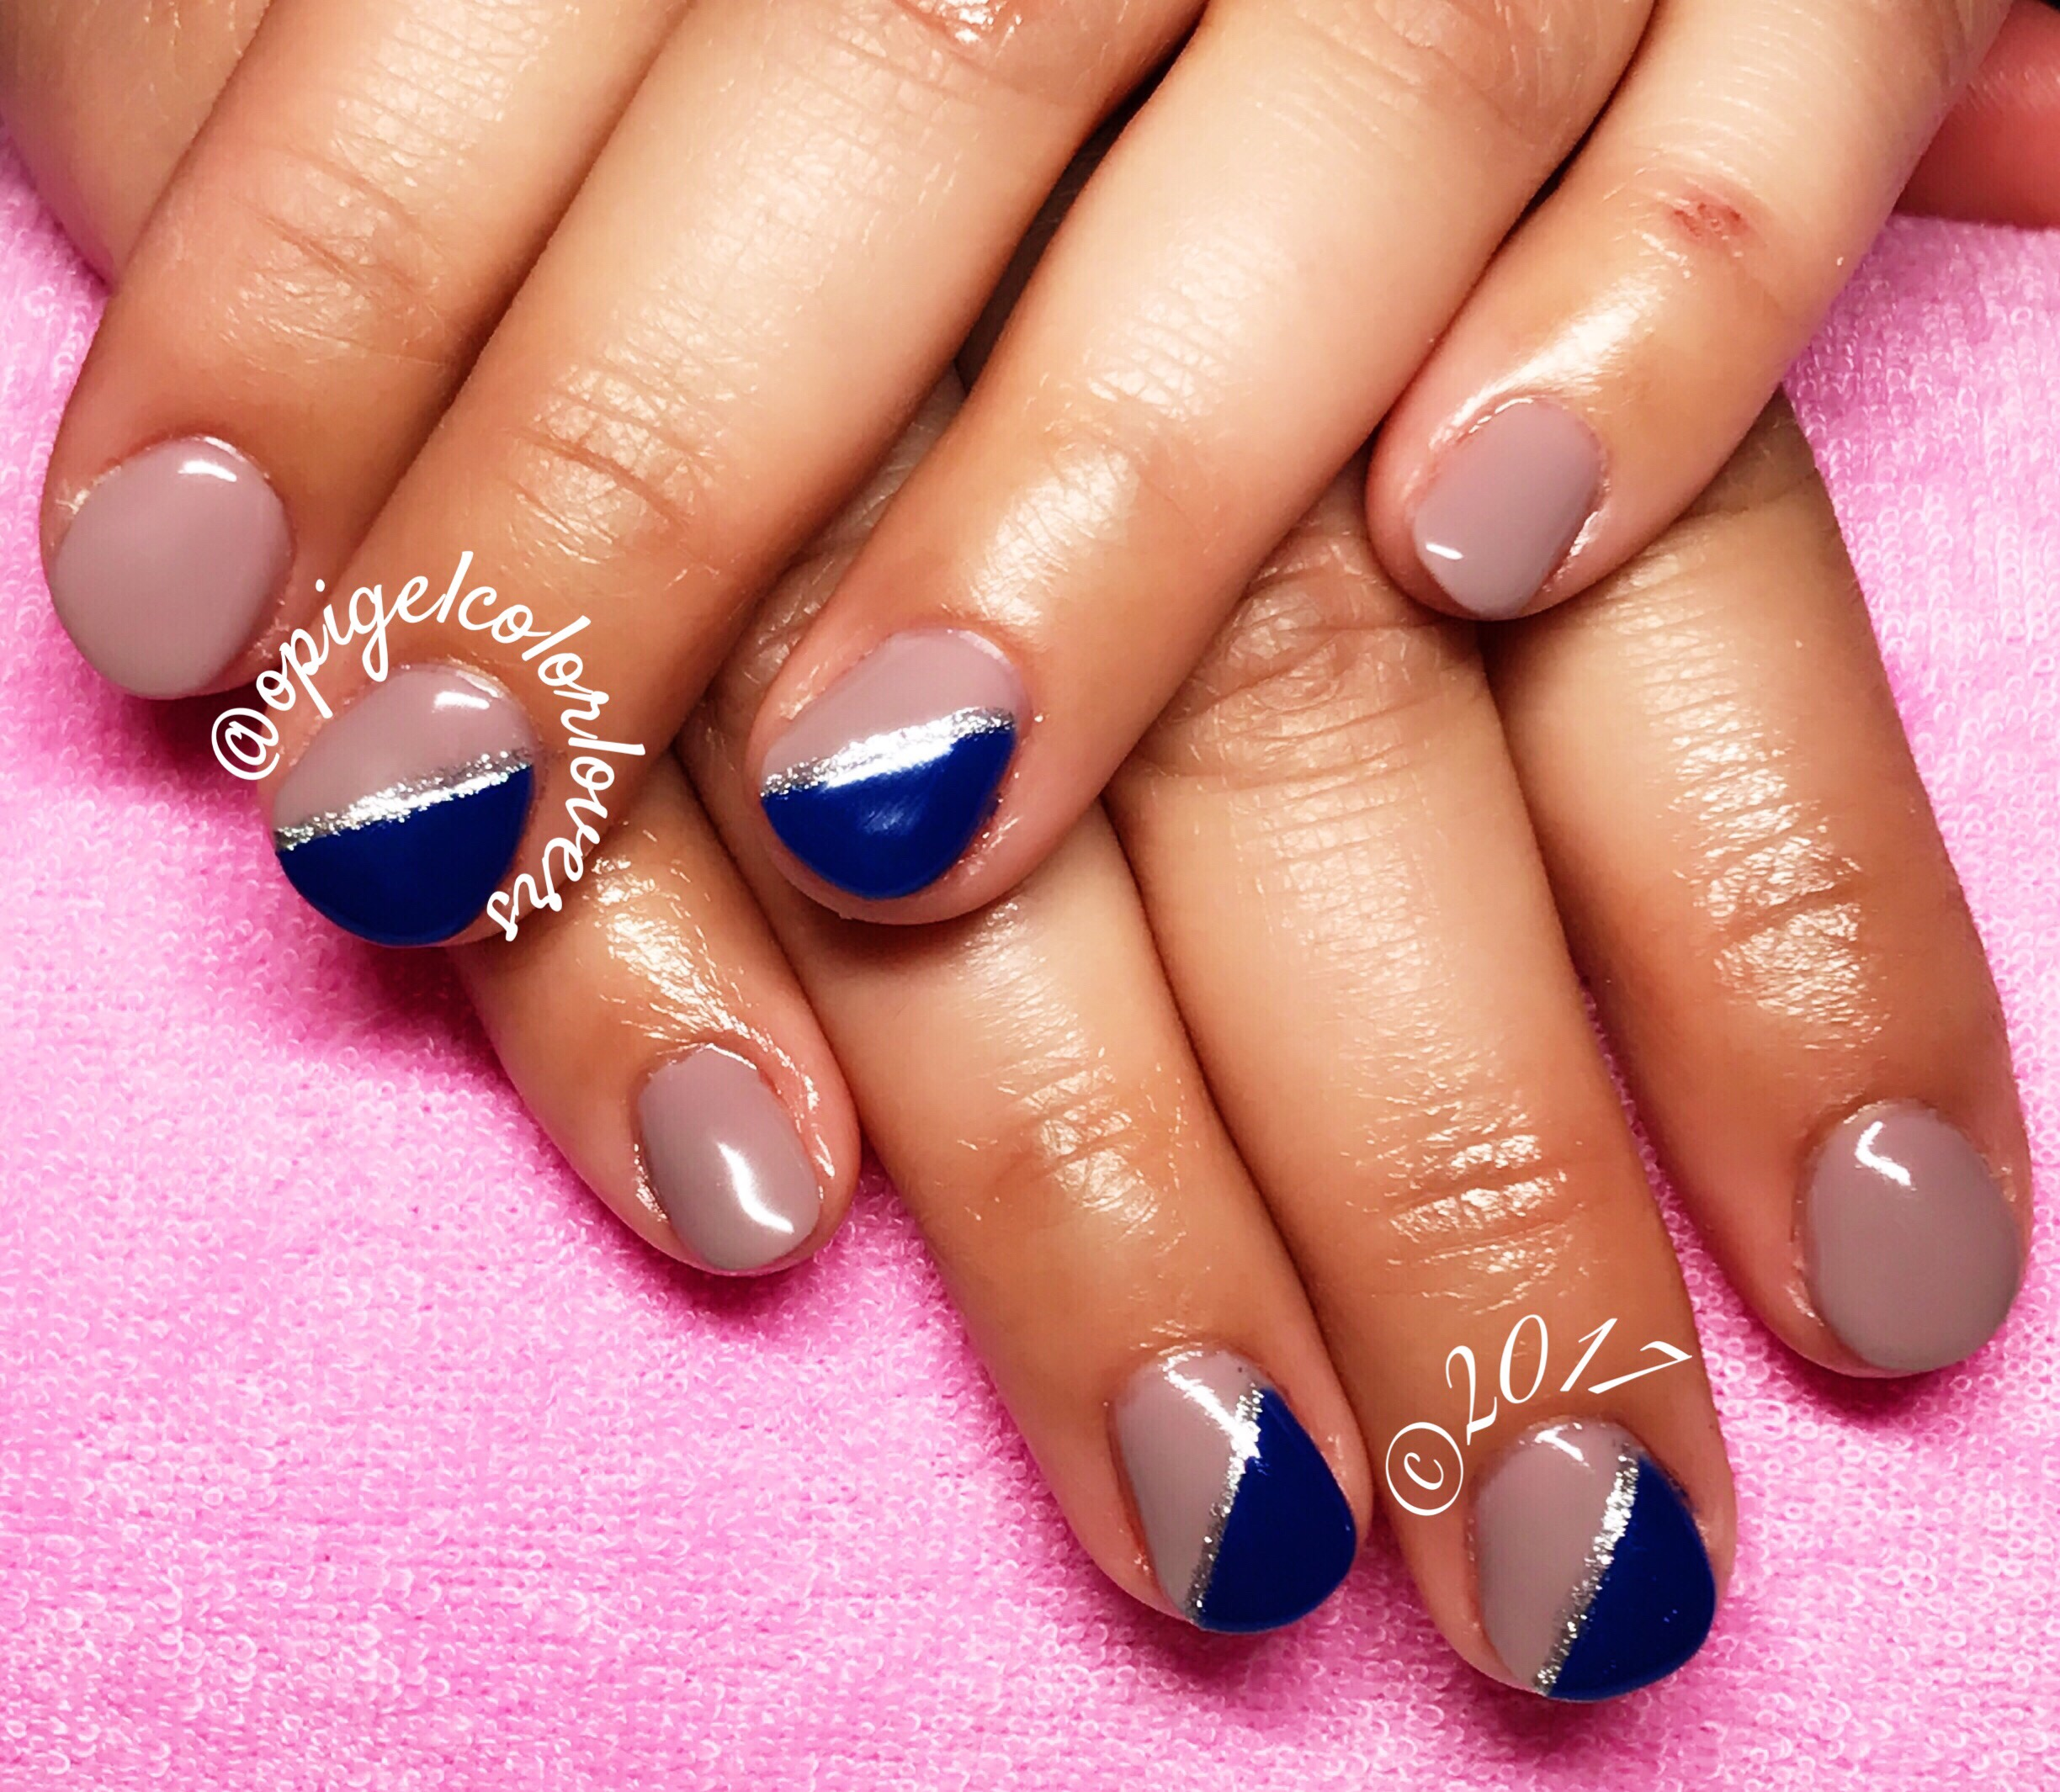 Pictures Of Nail Polish Hands – Papillon Day Spa